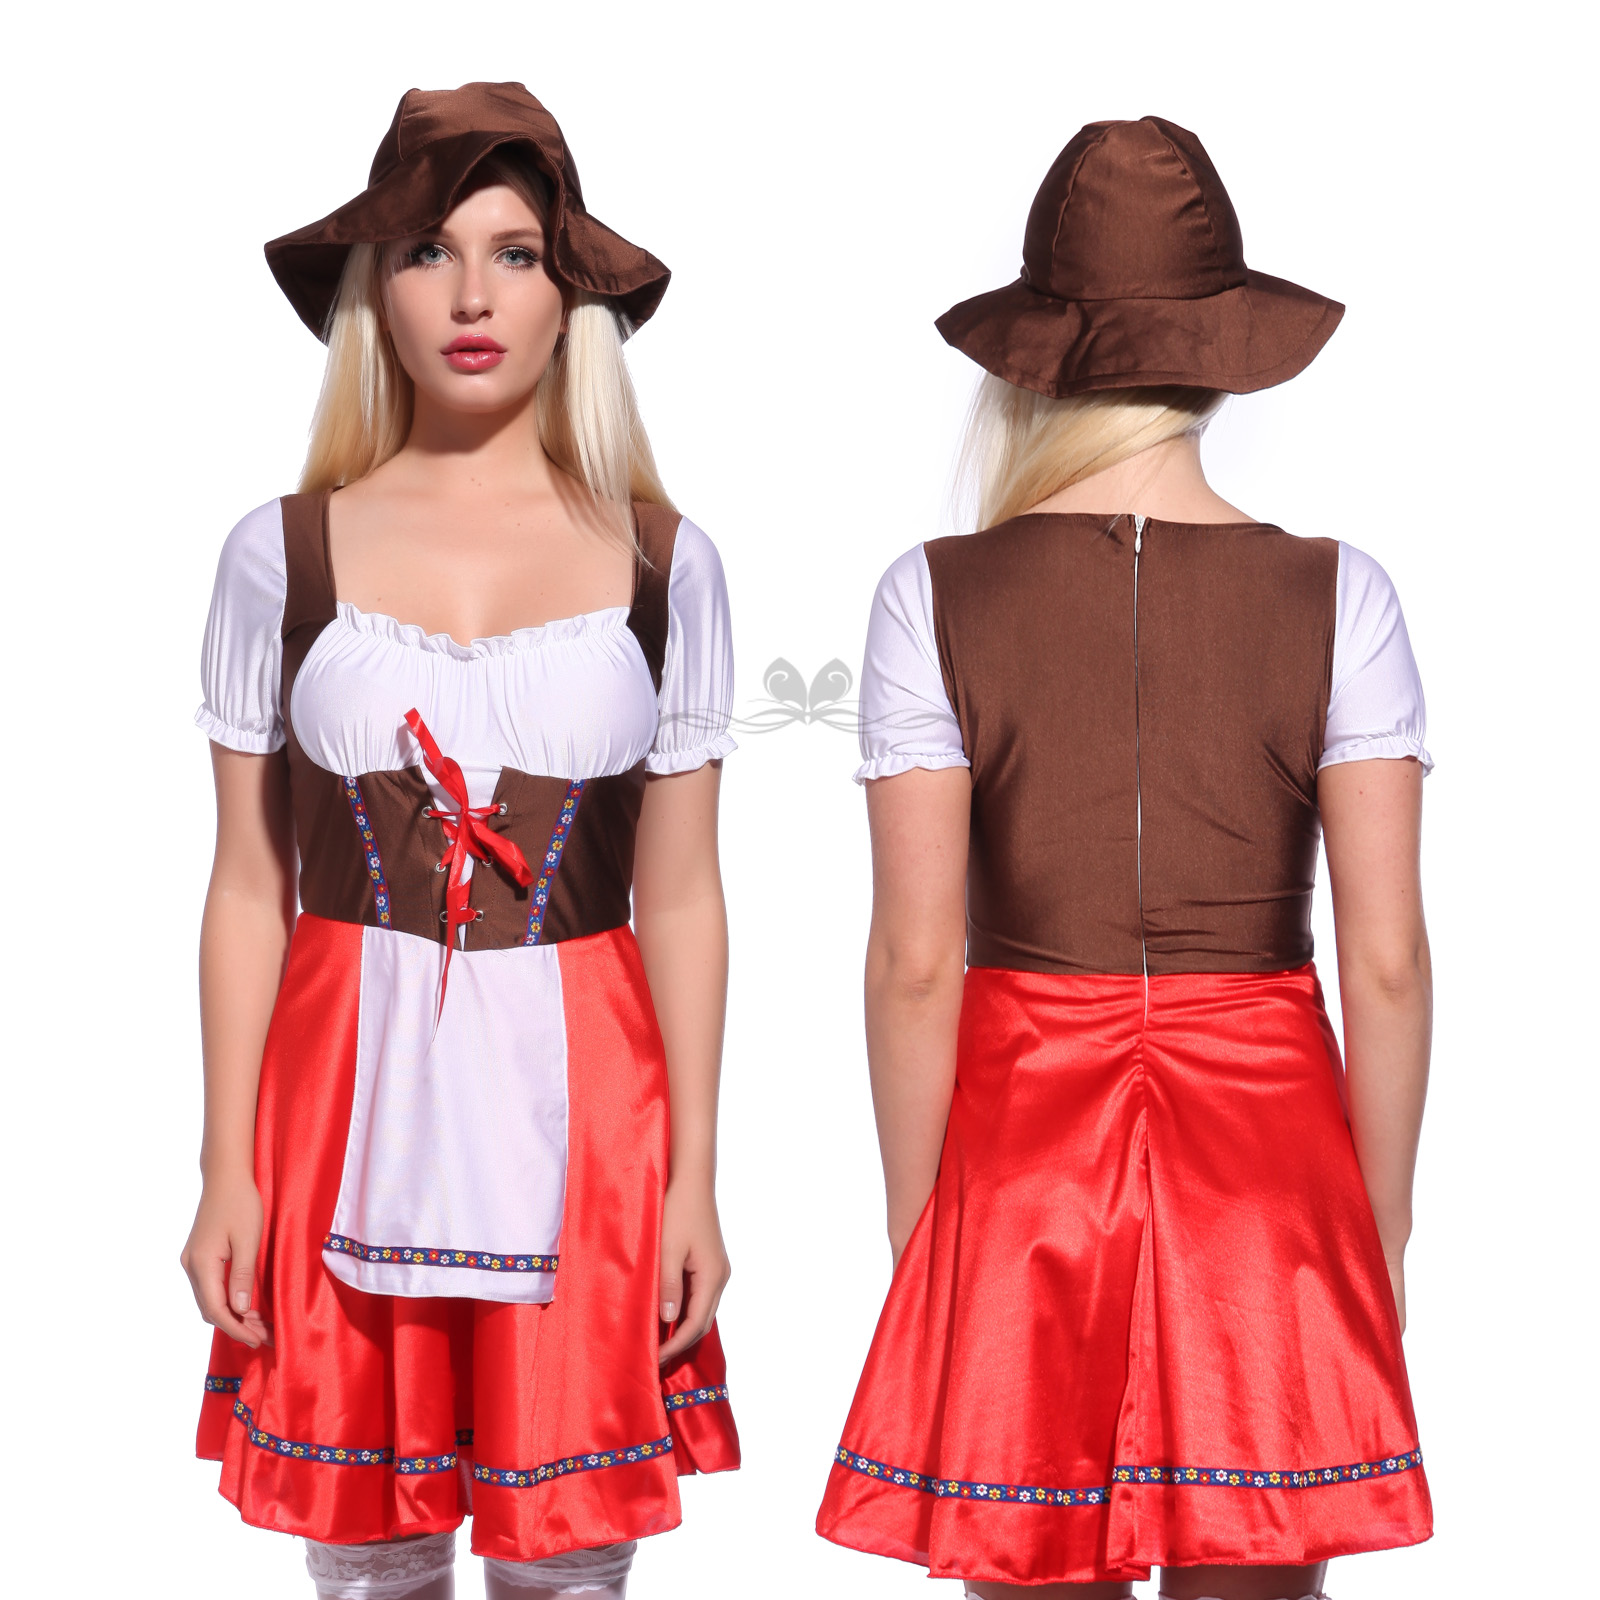 German Bavarian Oktoberfest Beer Festival Fancy Dree Group Party Couples Costume  sc 1 st  eBay & Mens Ladies Oktoberfest German Beer Maid Wench Costume Halloween ...